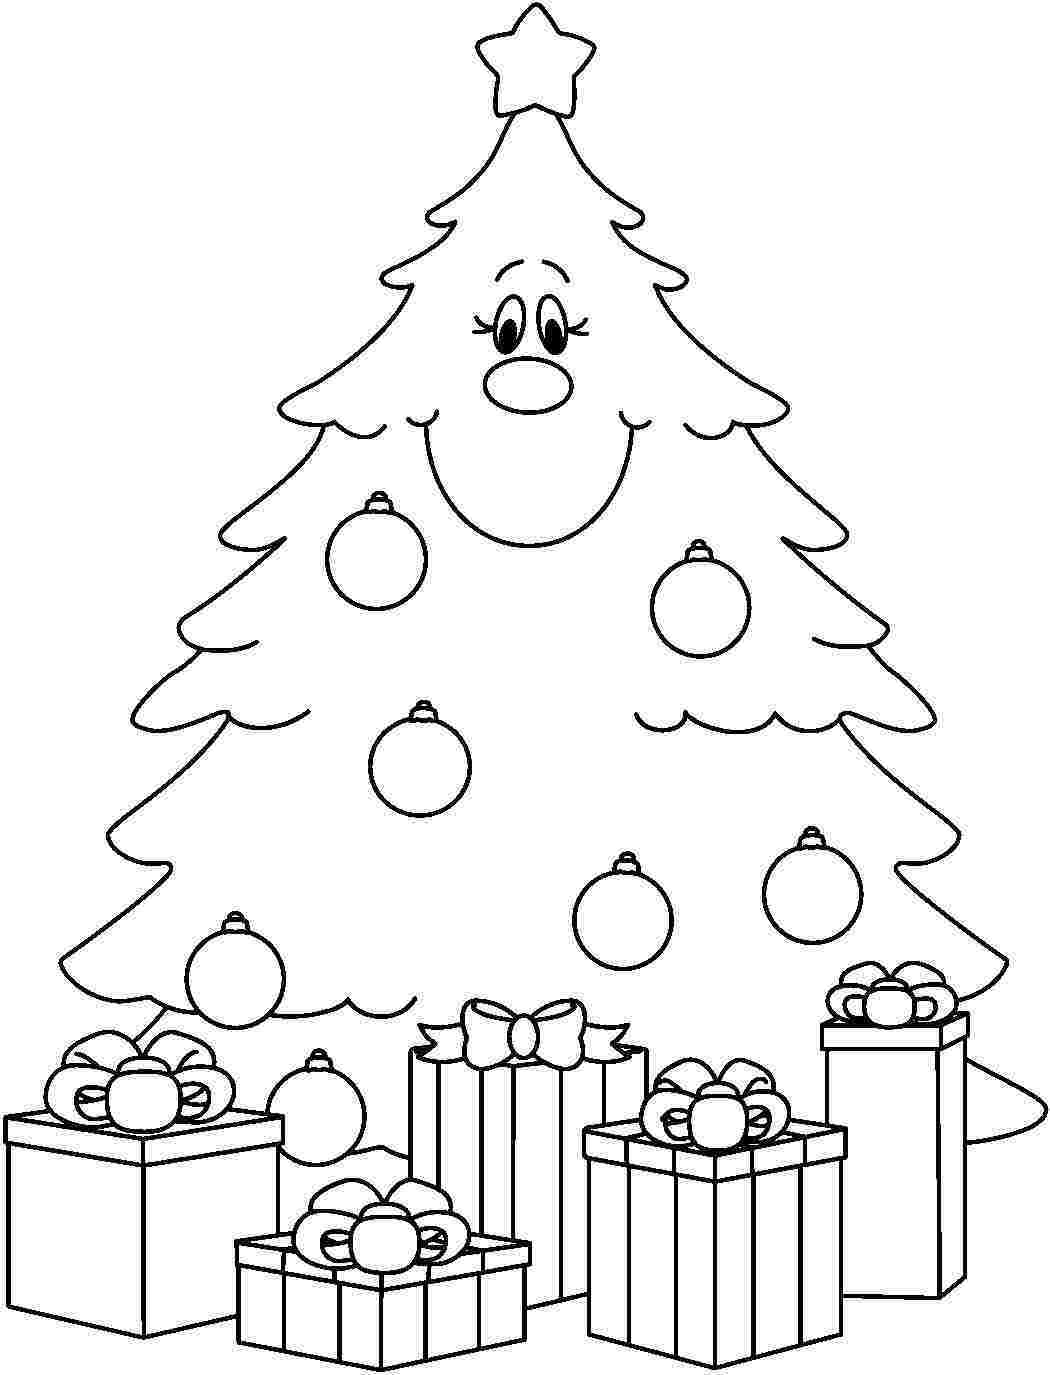 Drawn christmas ornaments blank Coloring Online Tree Christmas Page